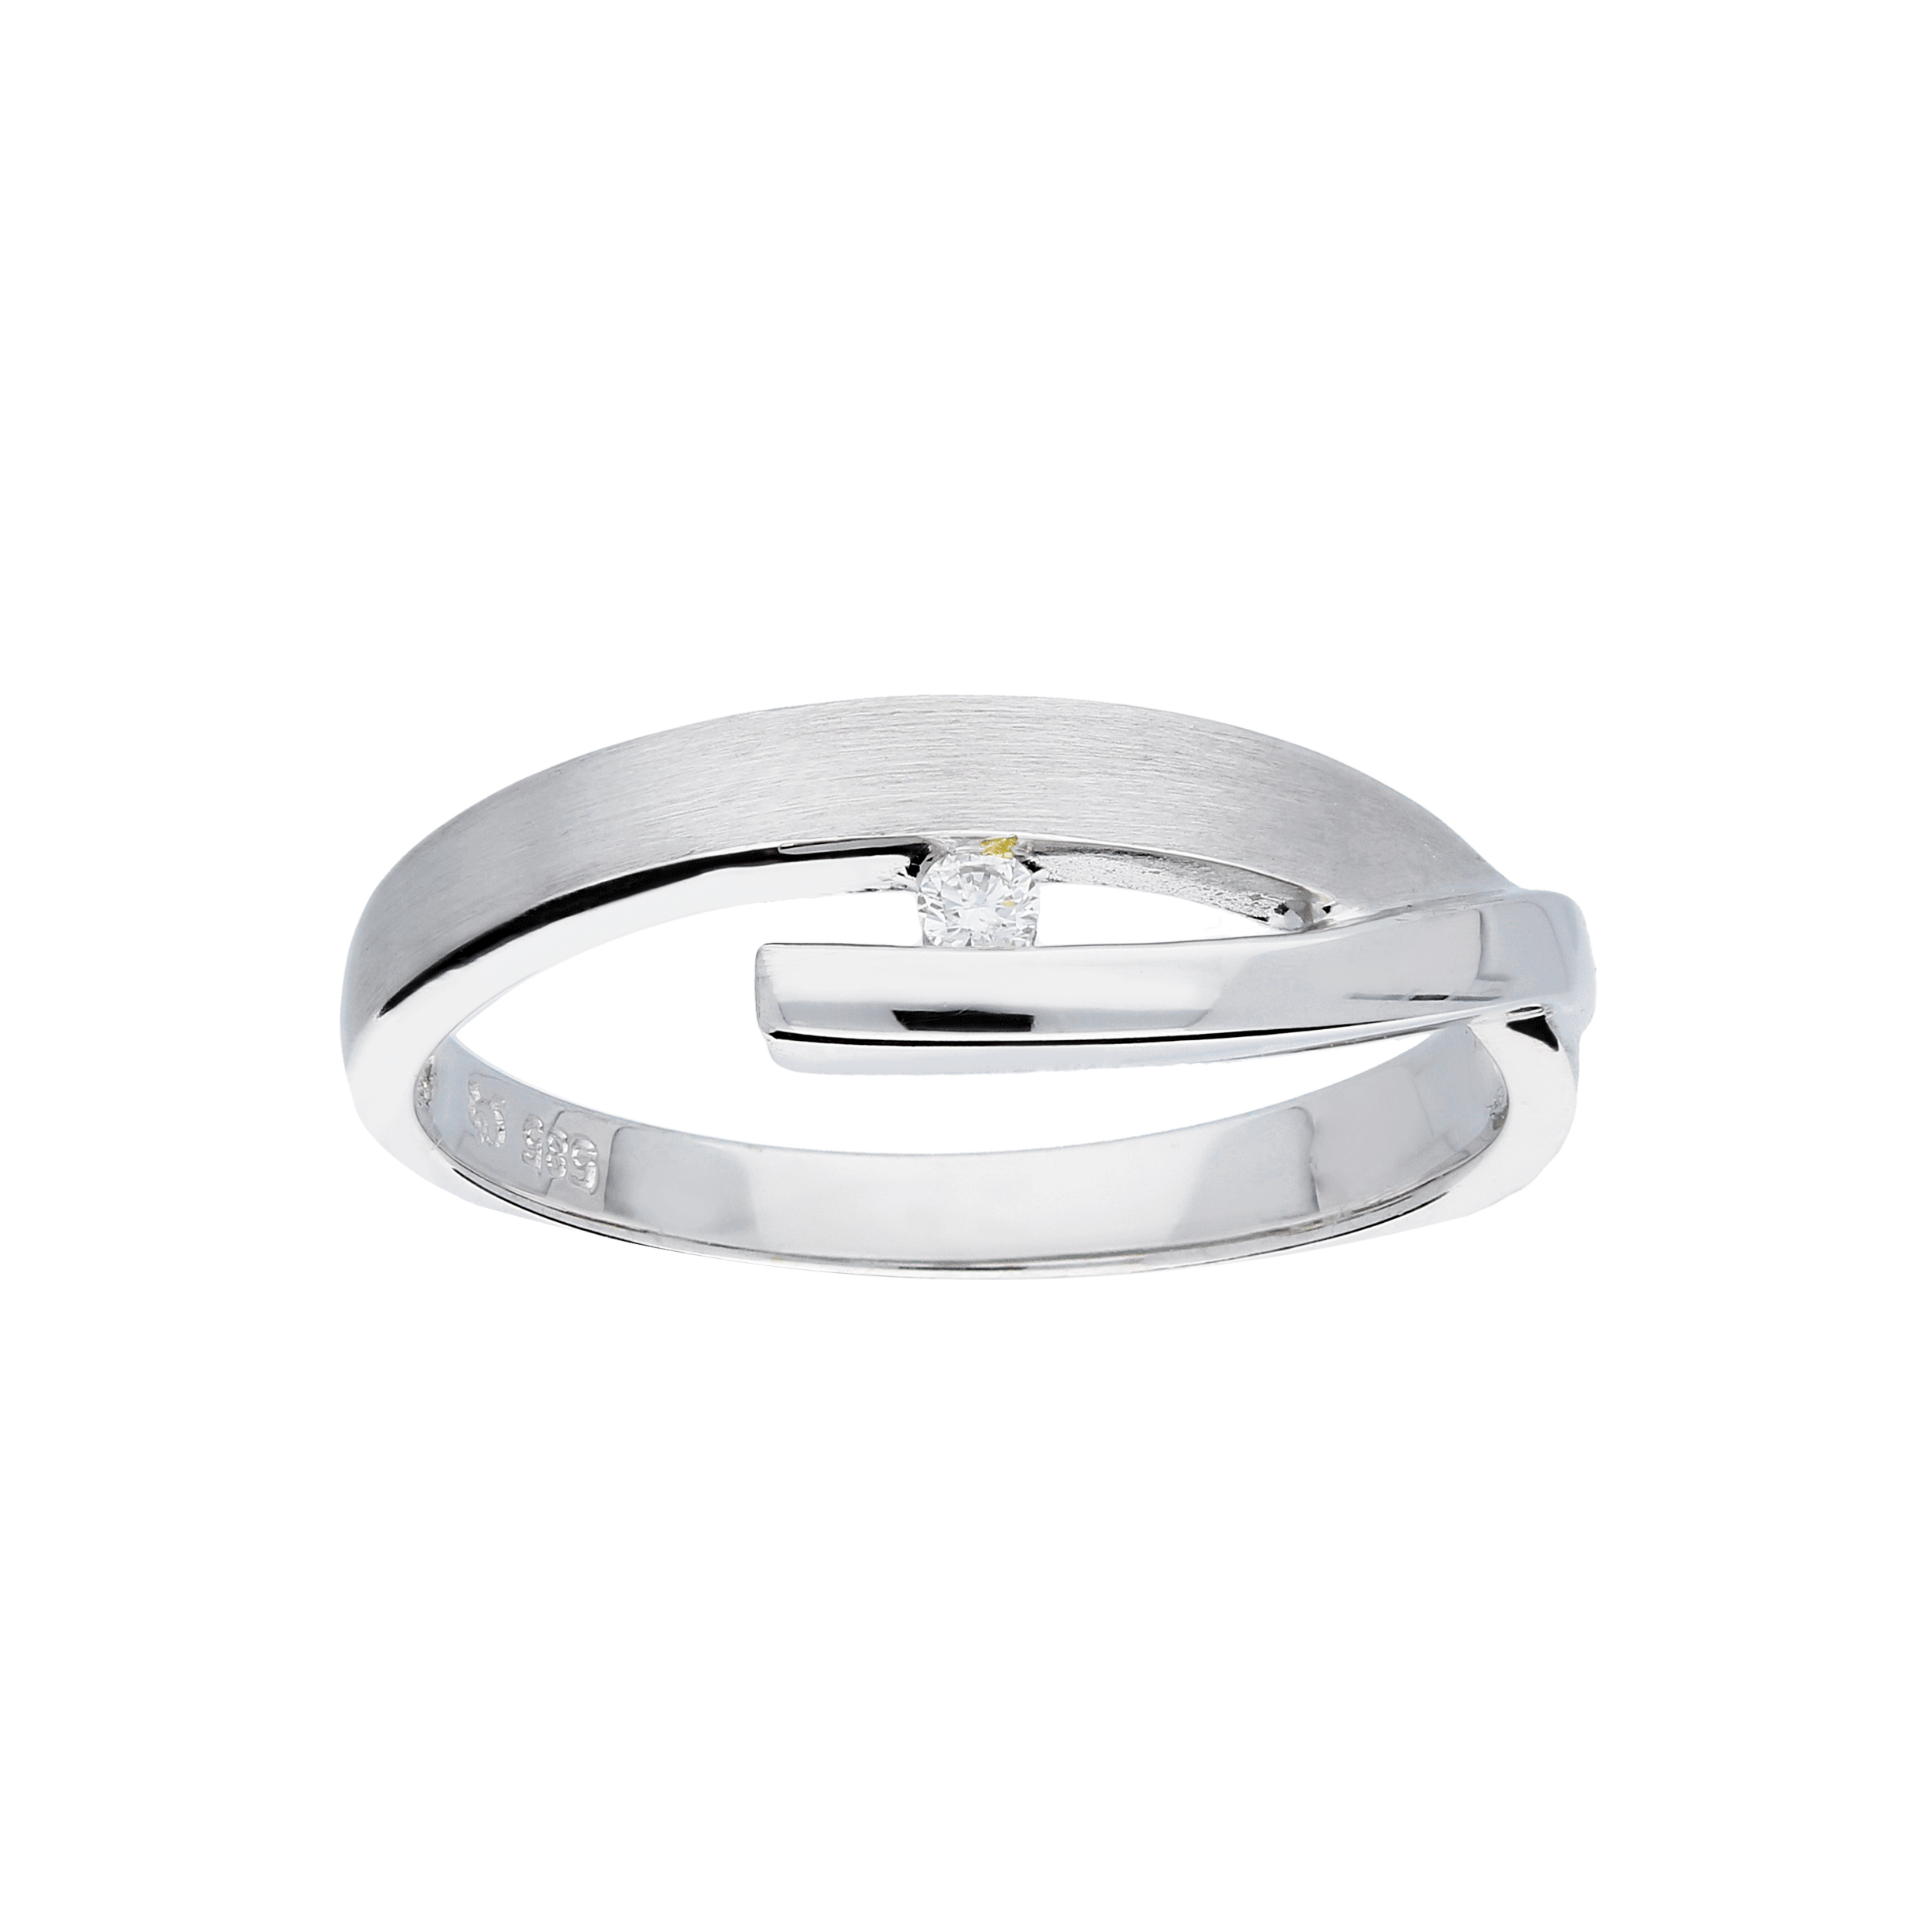 Glow Witgouden Ring Mat Glanzend Diamant 1 0.03ct G si 214.3013.56